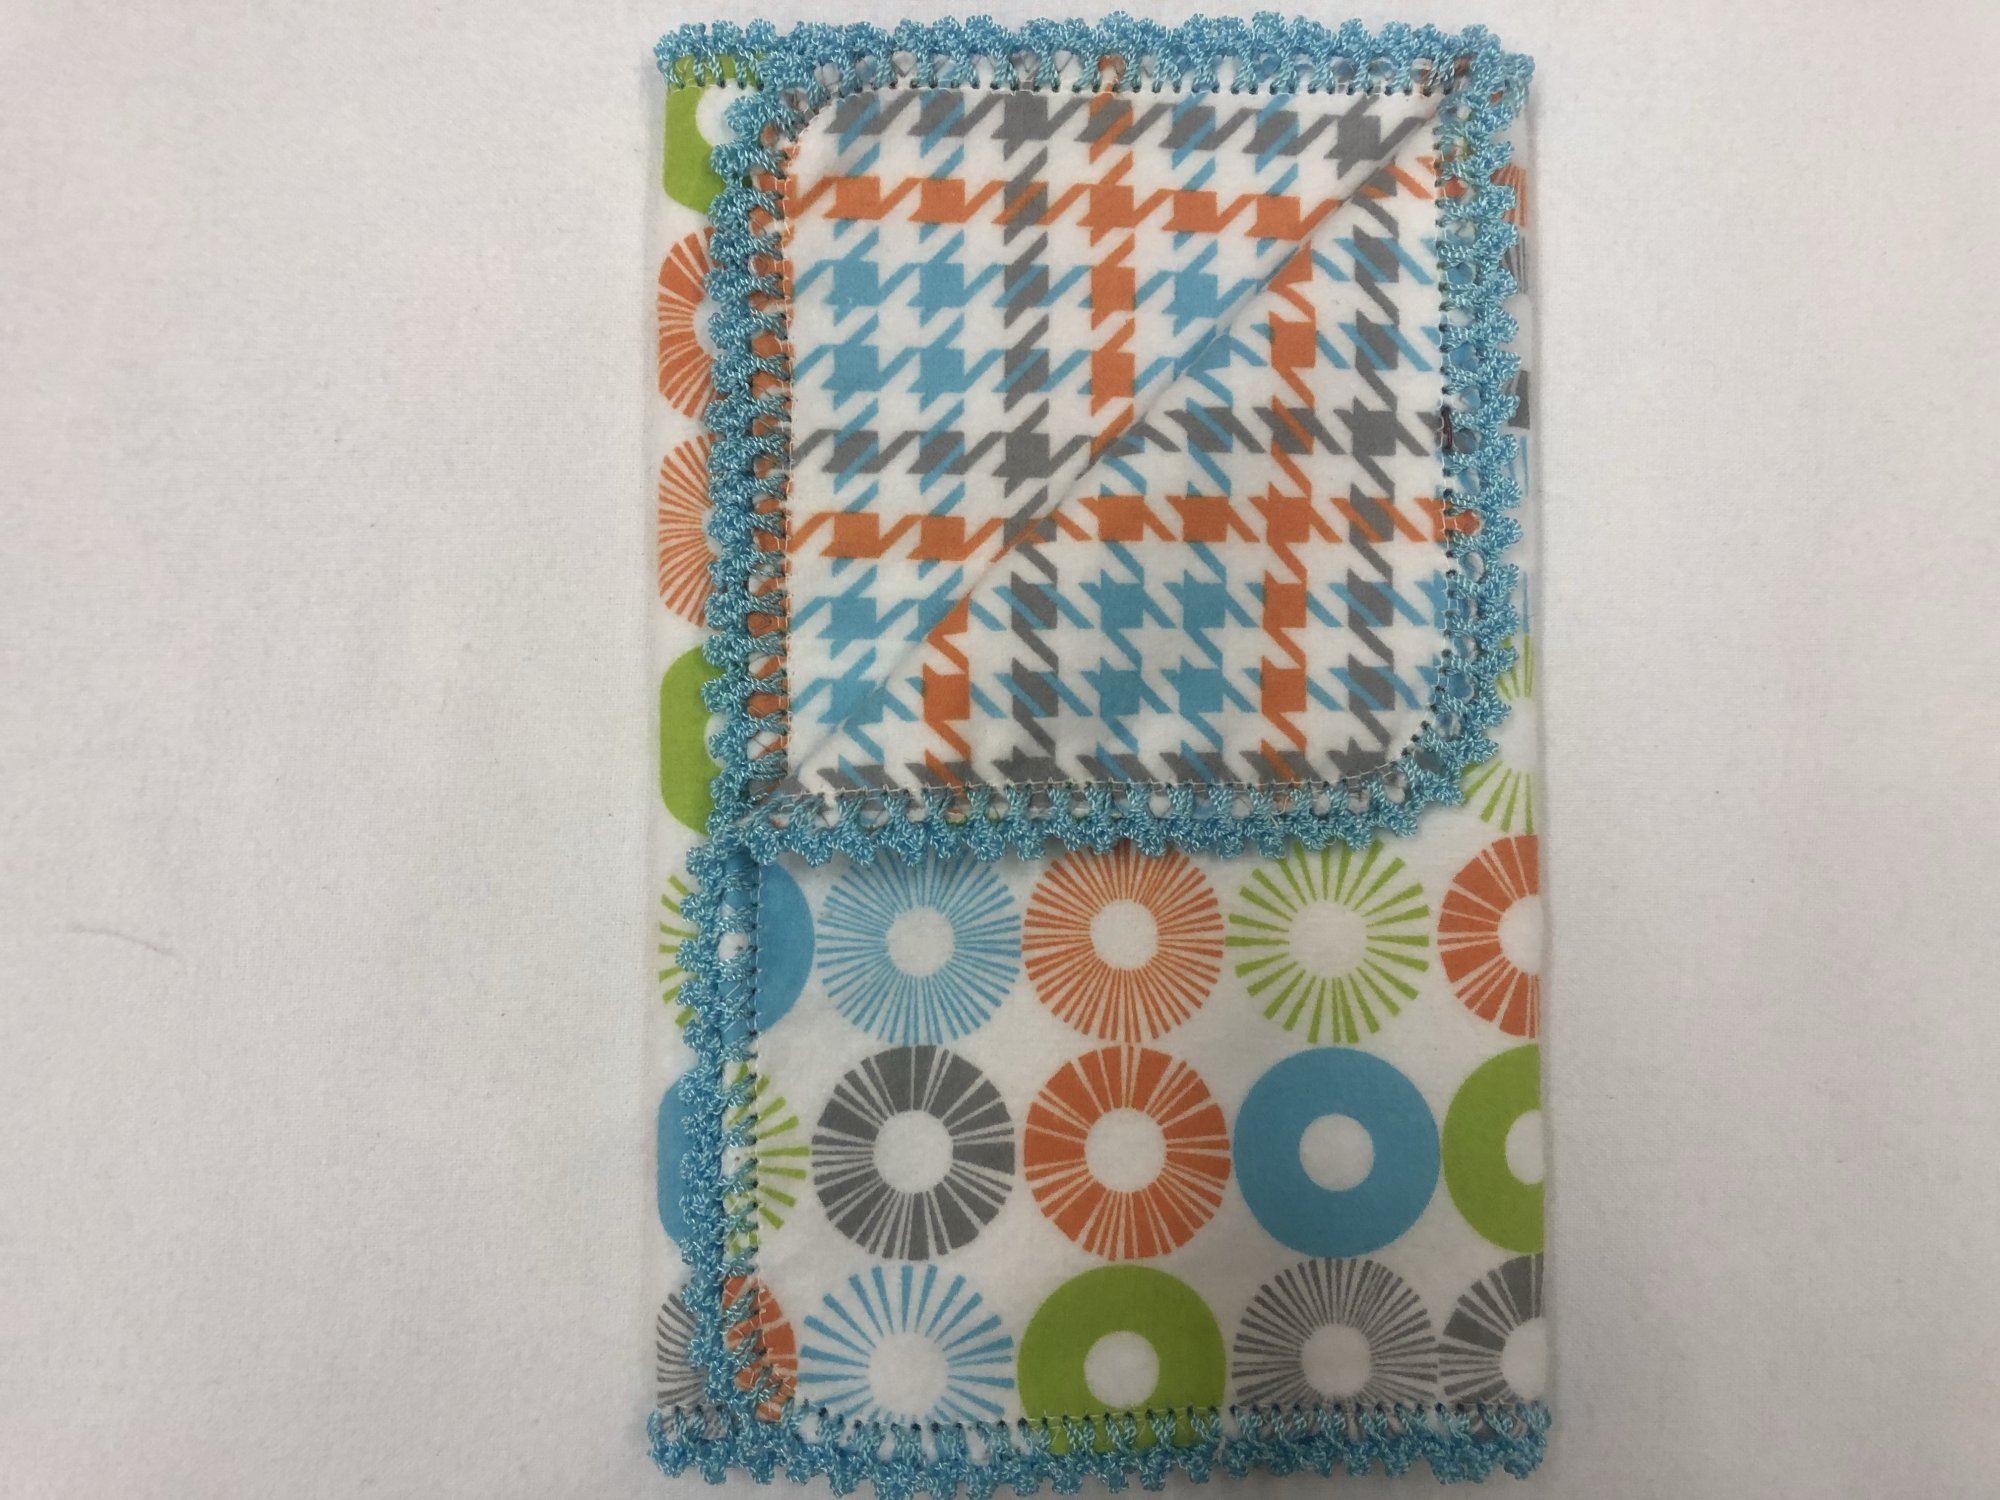 Teal, orange, green, and grey circles on white background/Teal, grey,  and orange houndstooth crocheted burp cloth